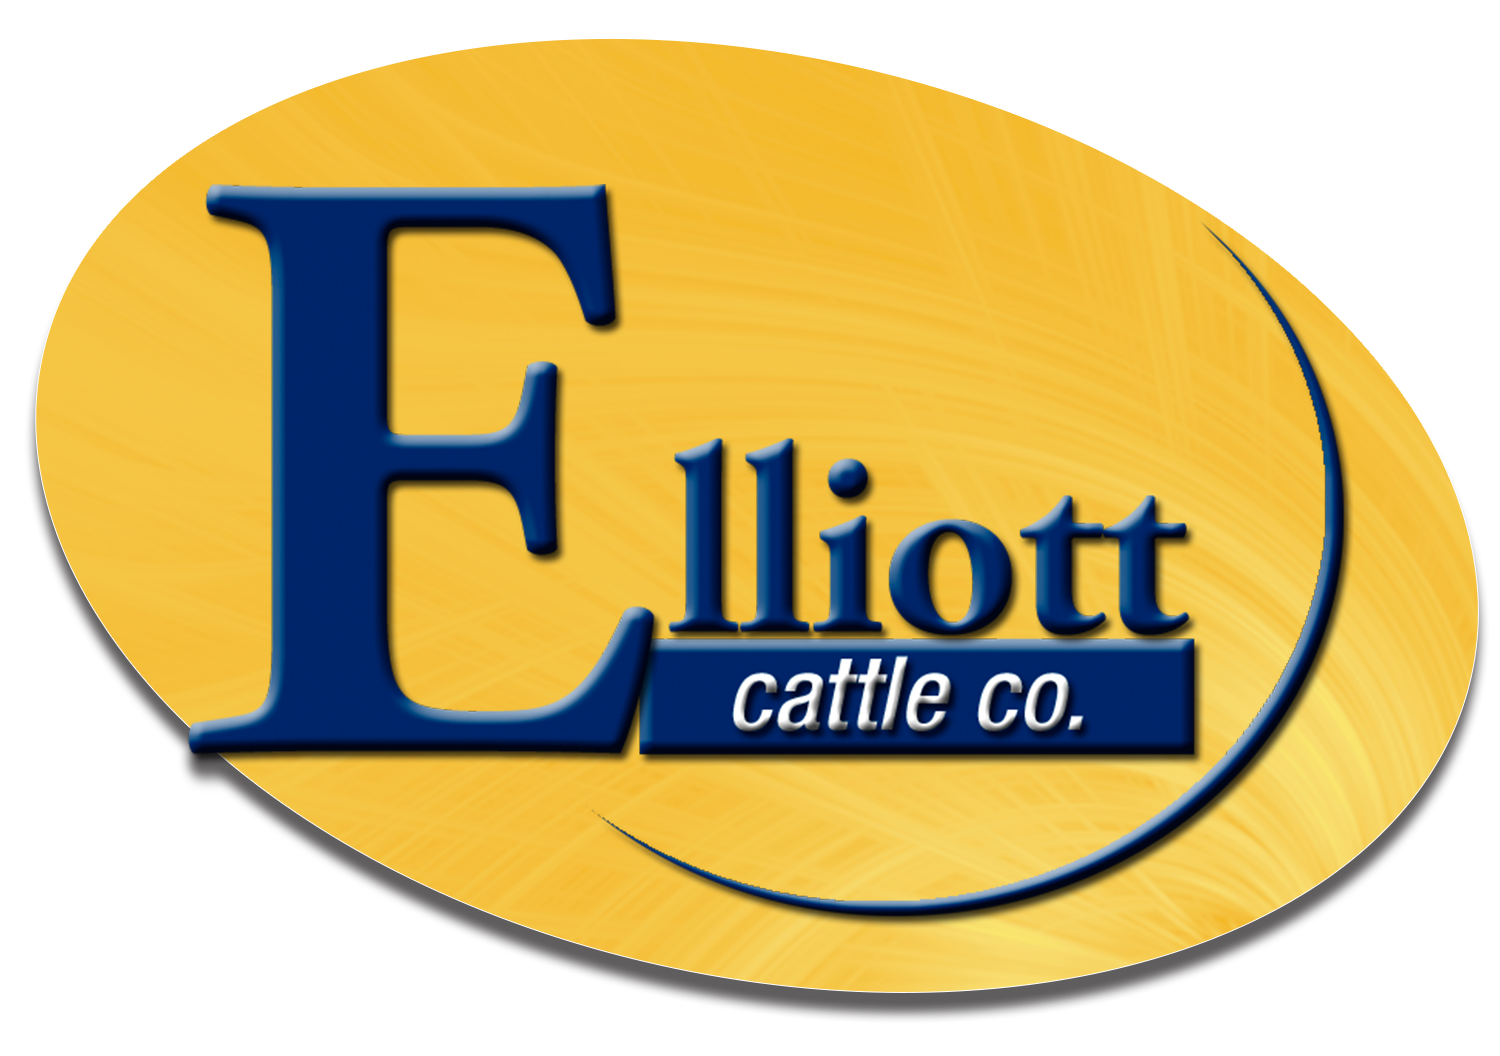 Elliott Cattle Co. |  Petersburg, Illinois